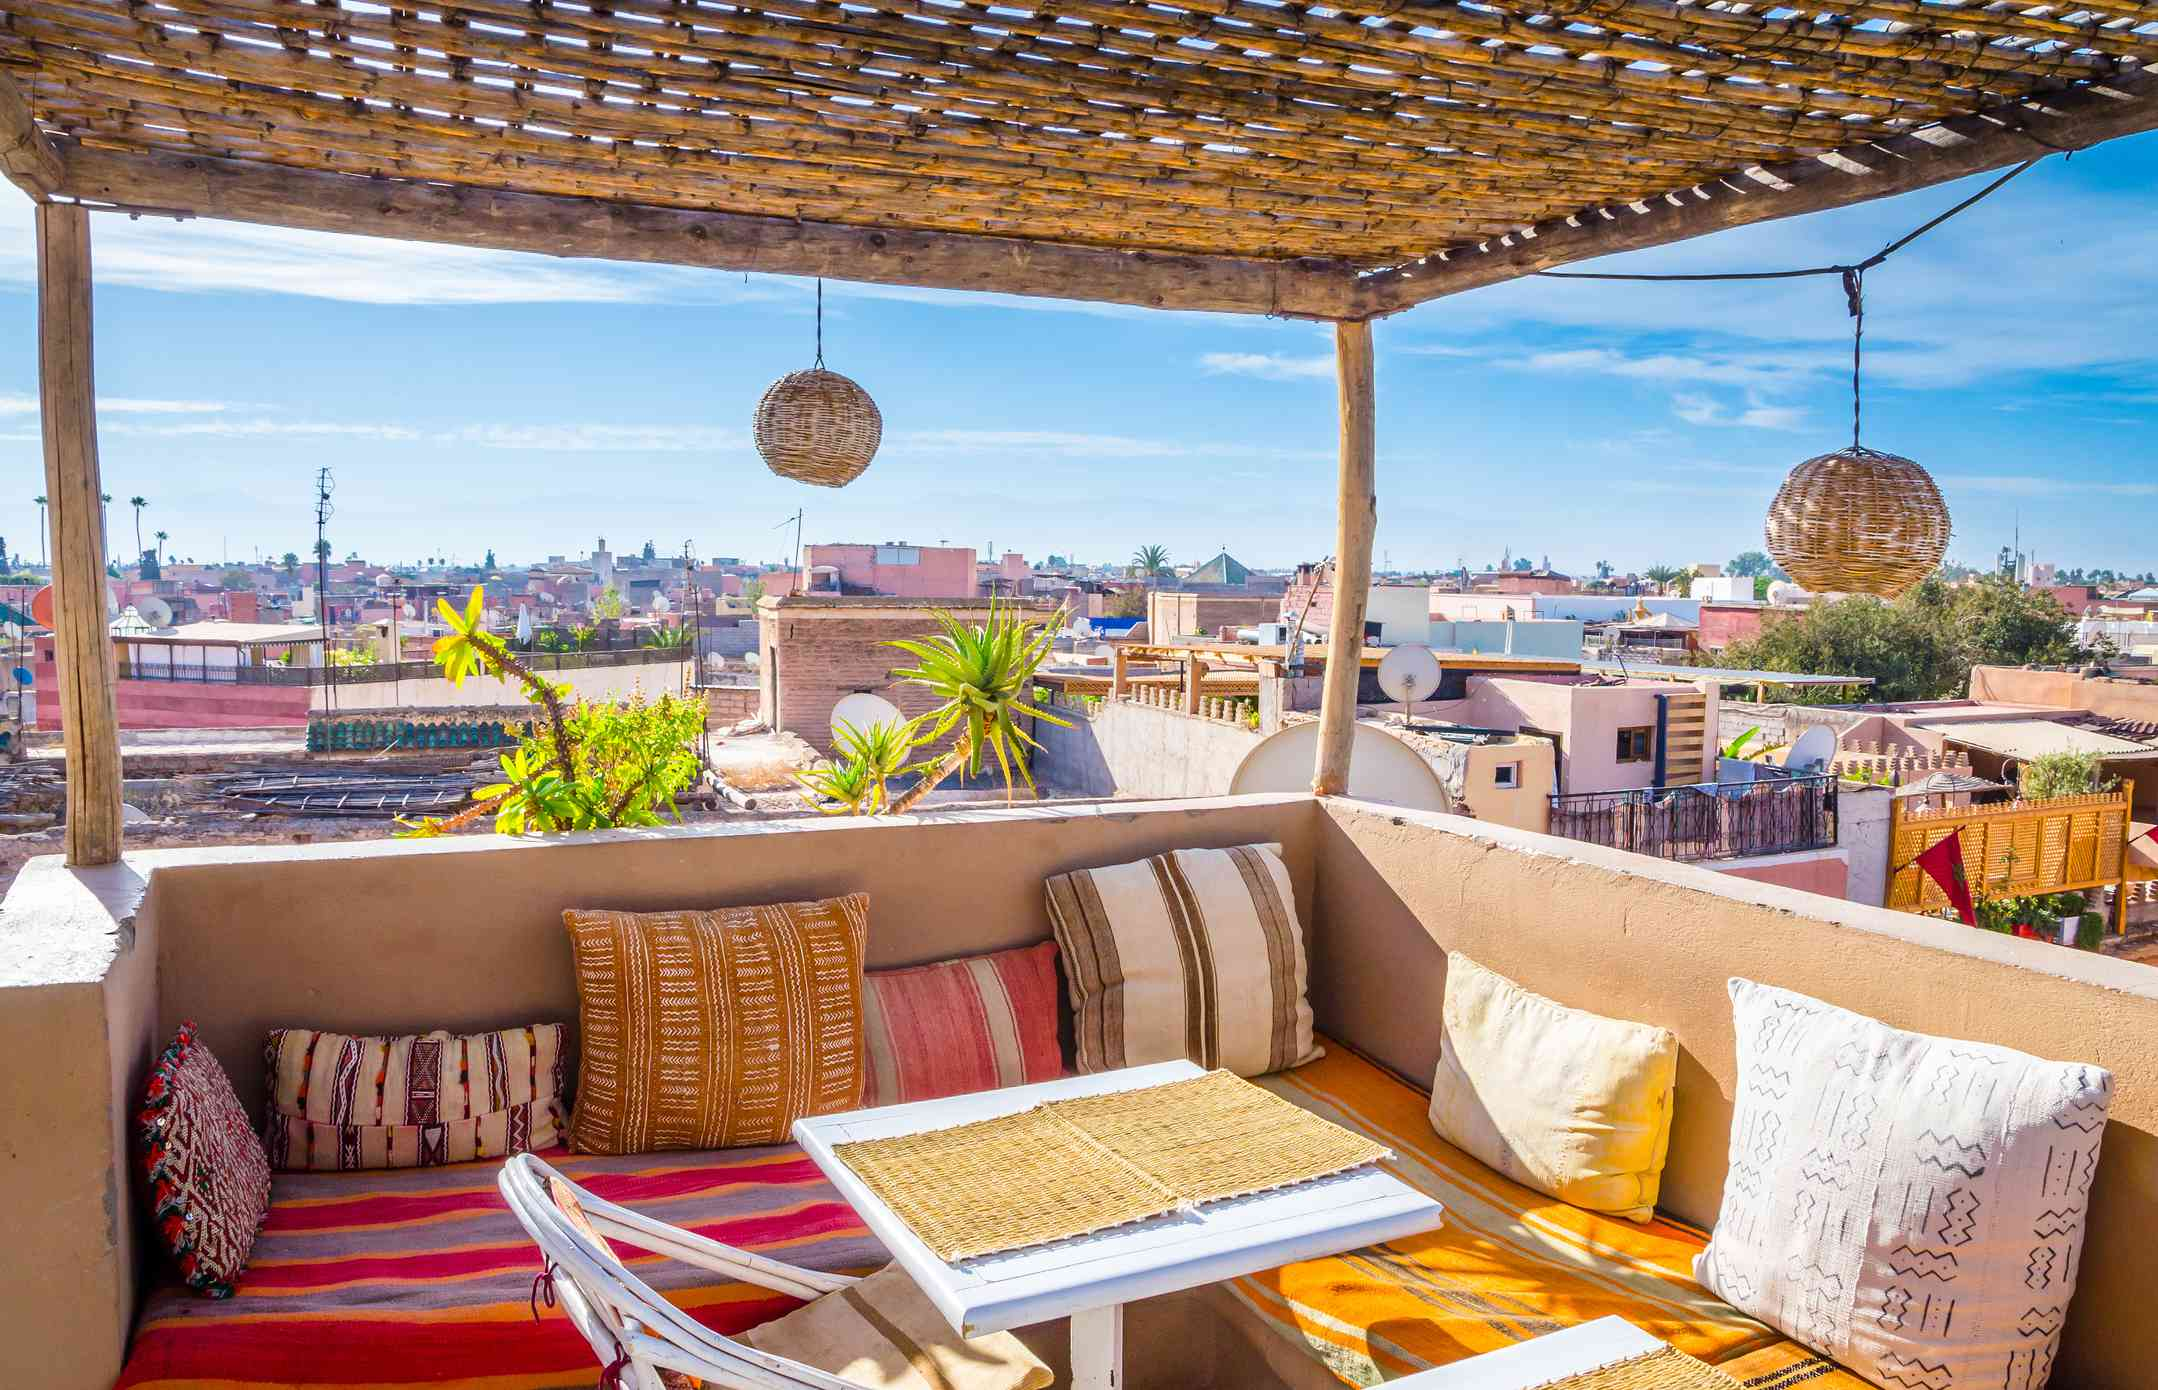 Outdoor living room in Morocco